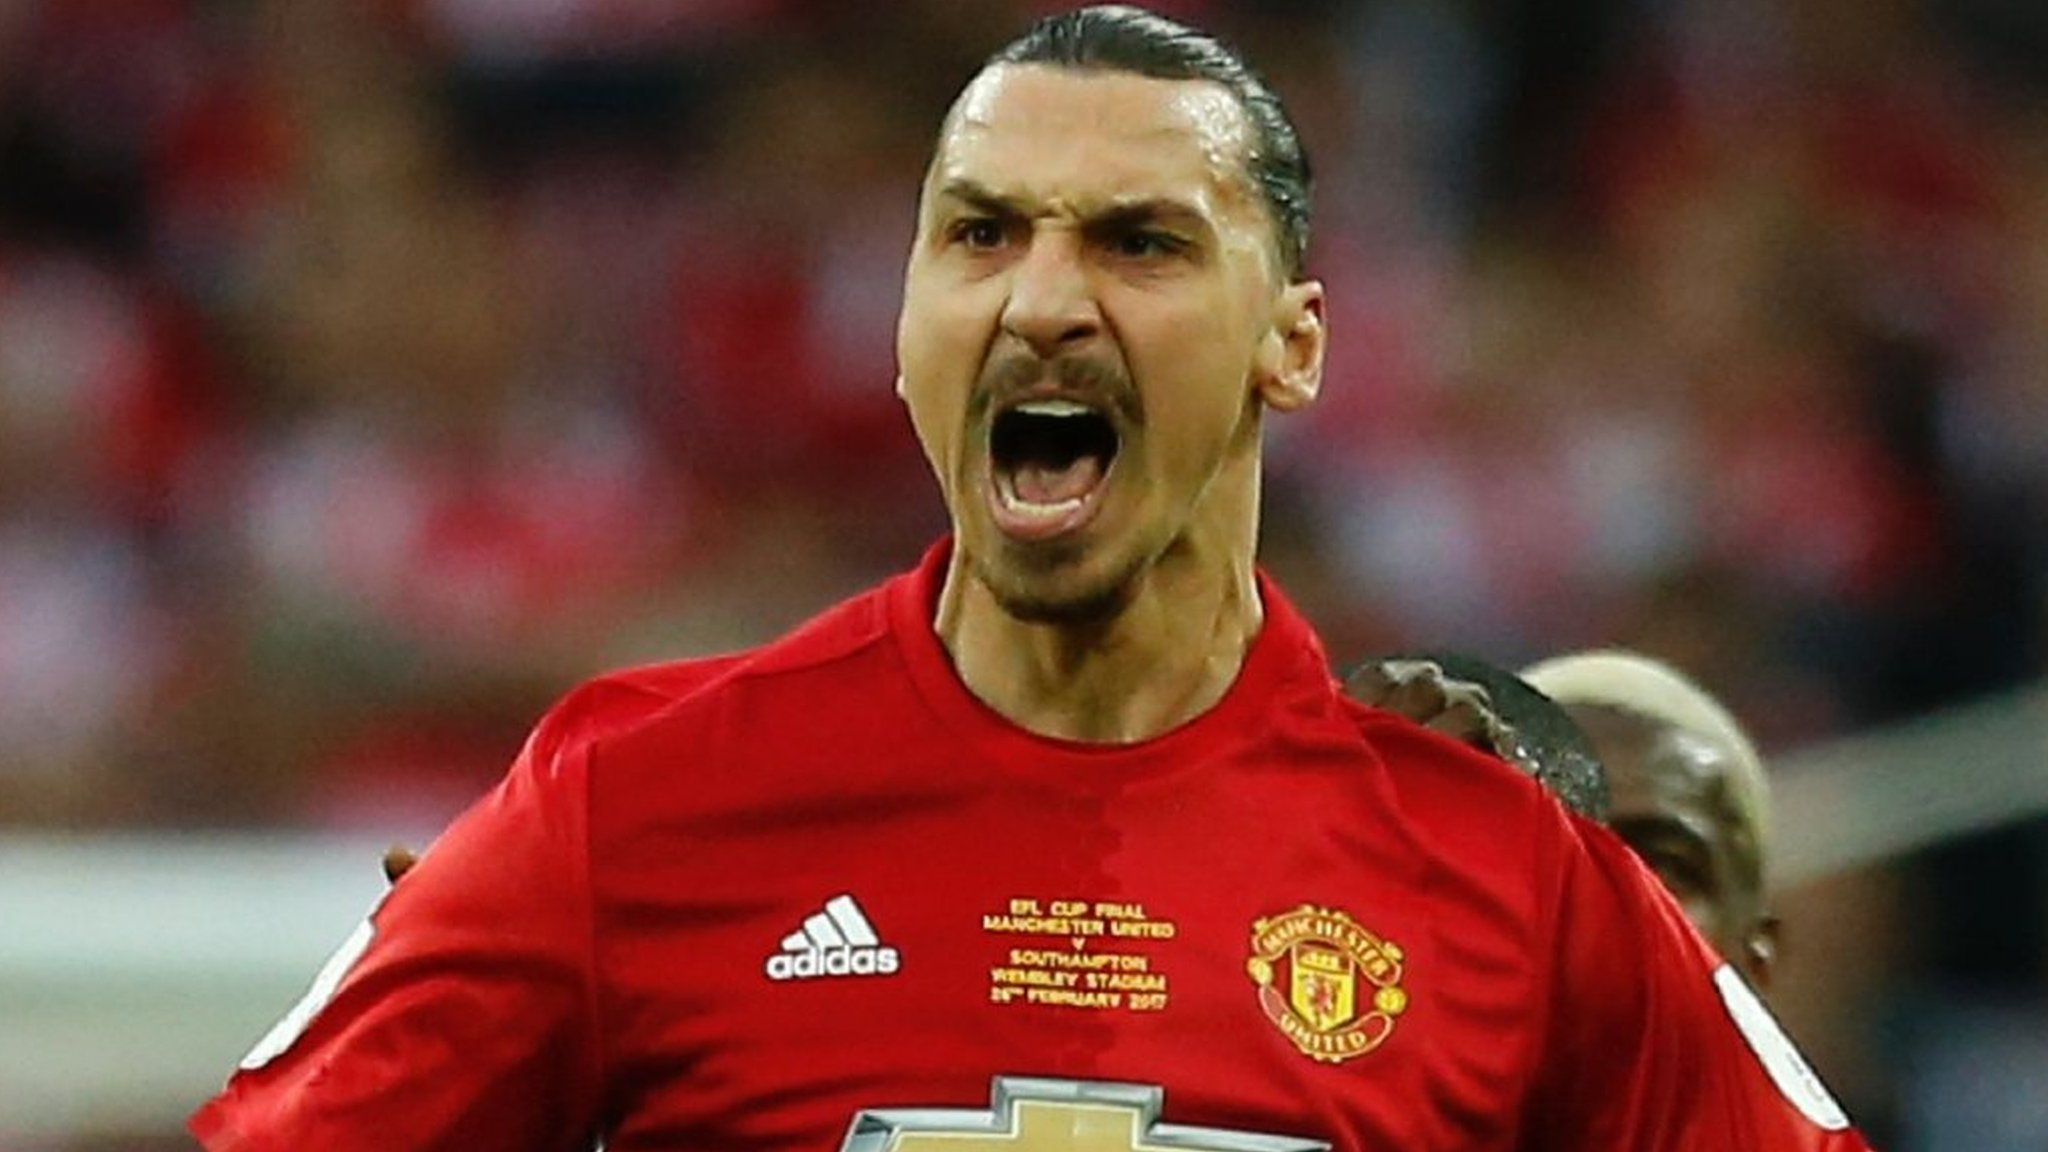 'Dear Los Angeles, you're welcome' - Ibrahimovic move announced in LA Times advert